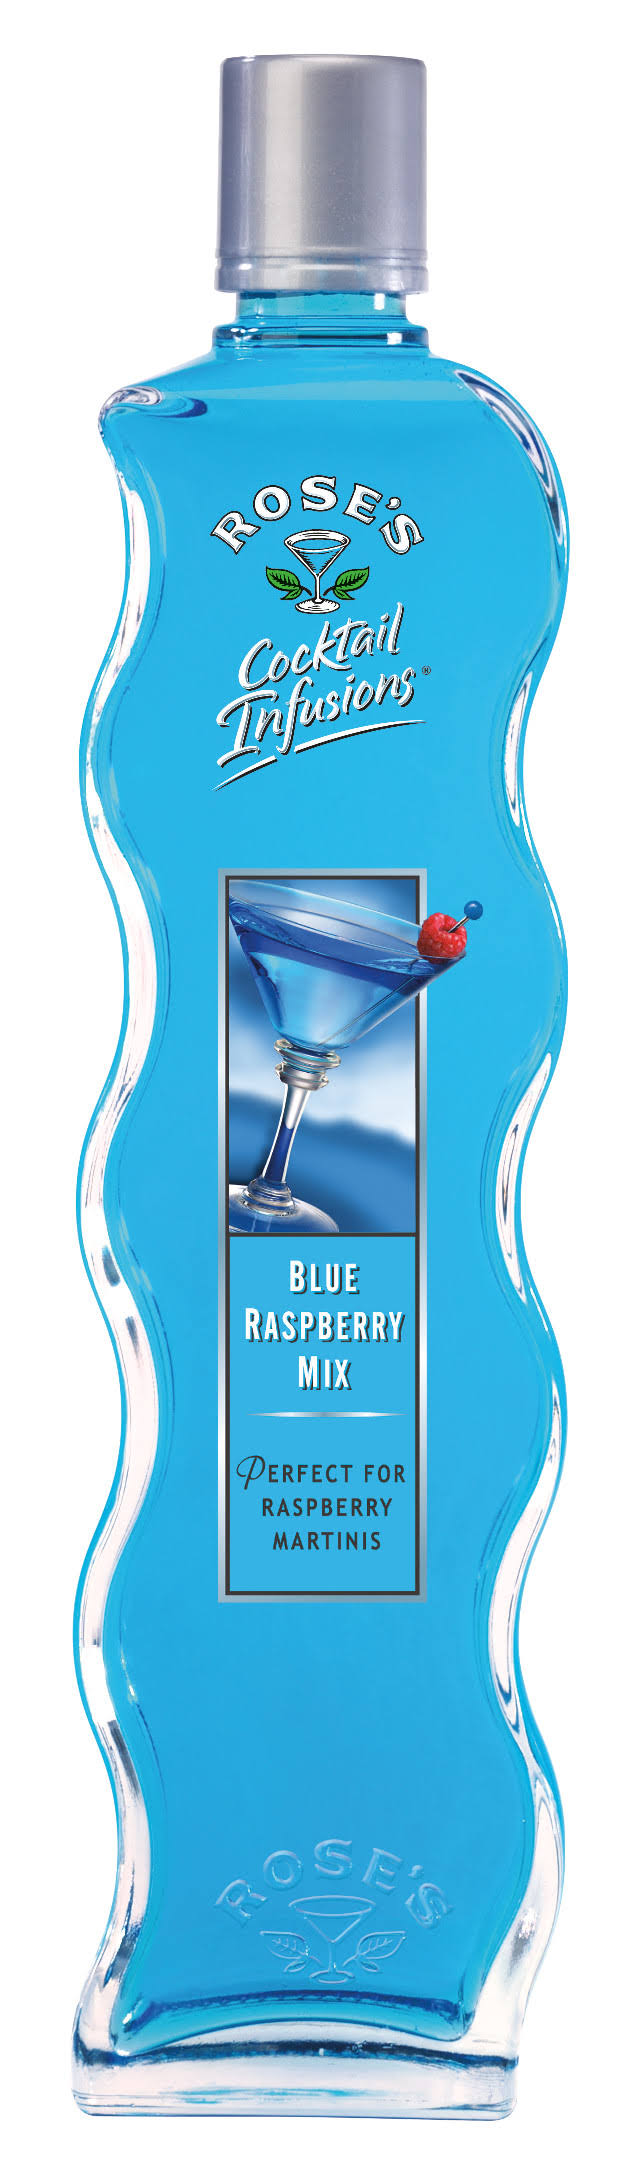 Rose's Cocktail Infusions Blue Raspberry Mix - 20 oz